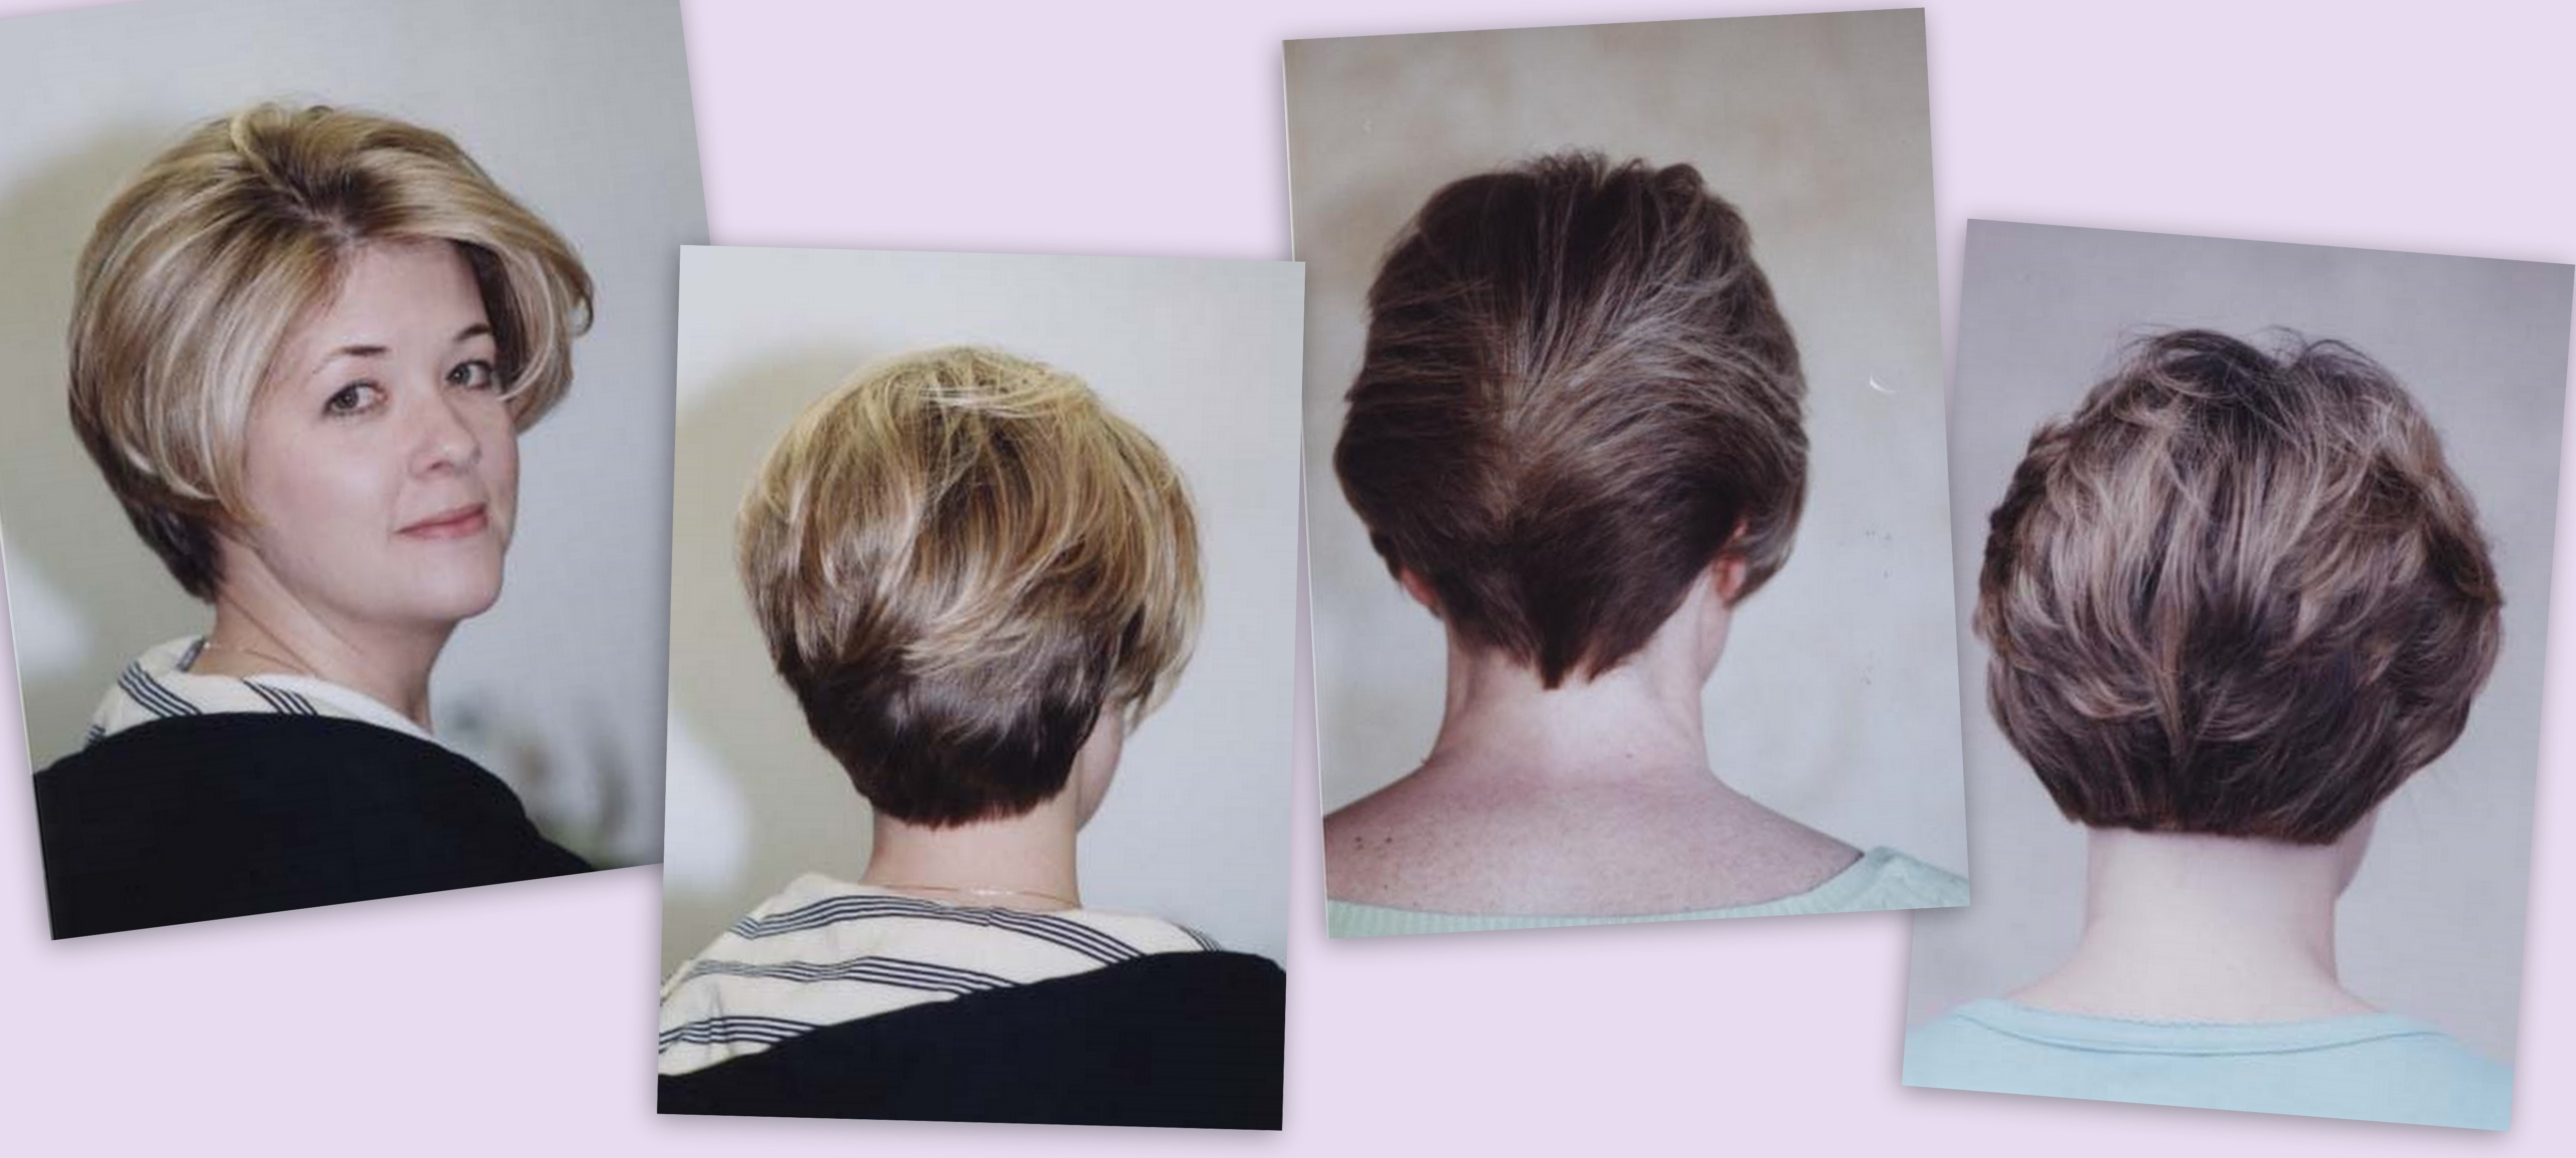 Pictures Of A Wedge Haircut » Hair Cut Idea | Hair Style Inside Newest Pixie Wedge Haircuts (View 4 of 15)